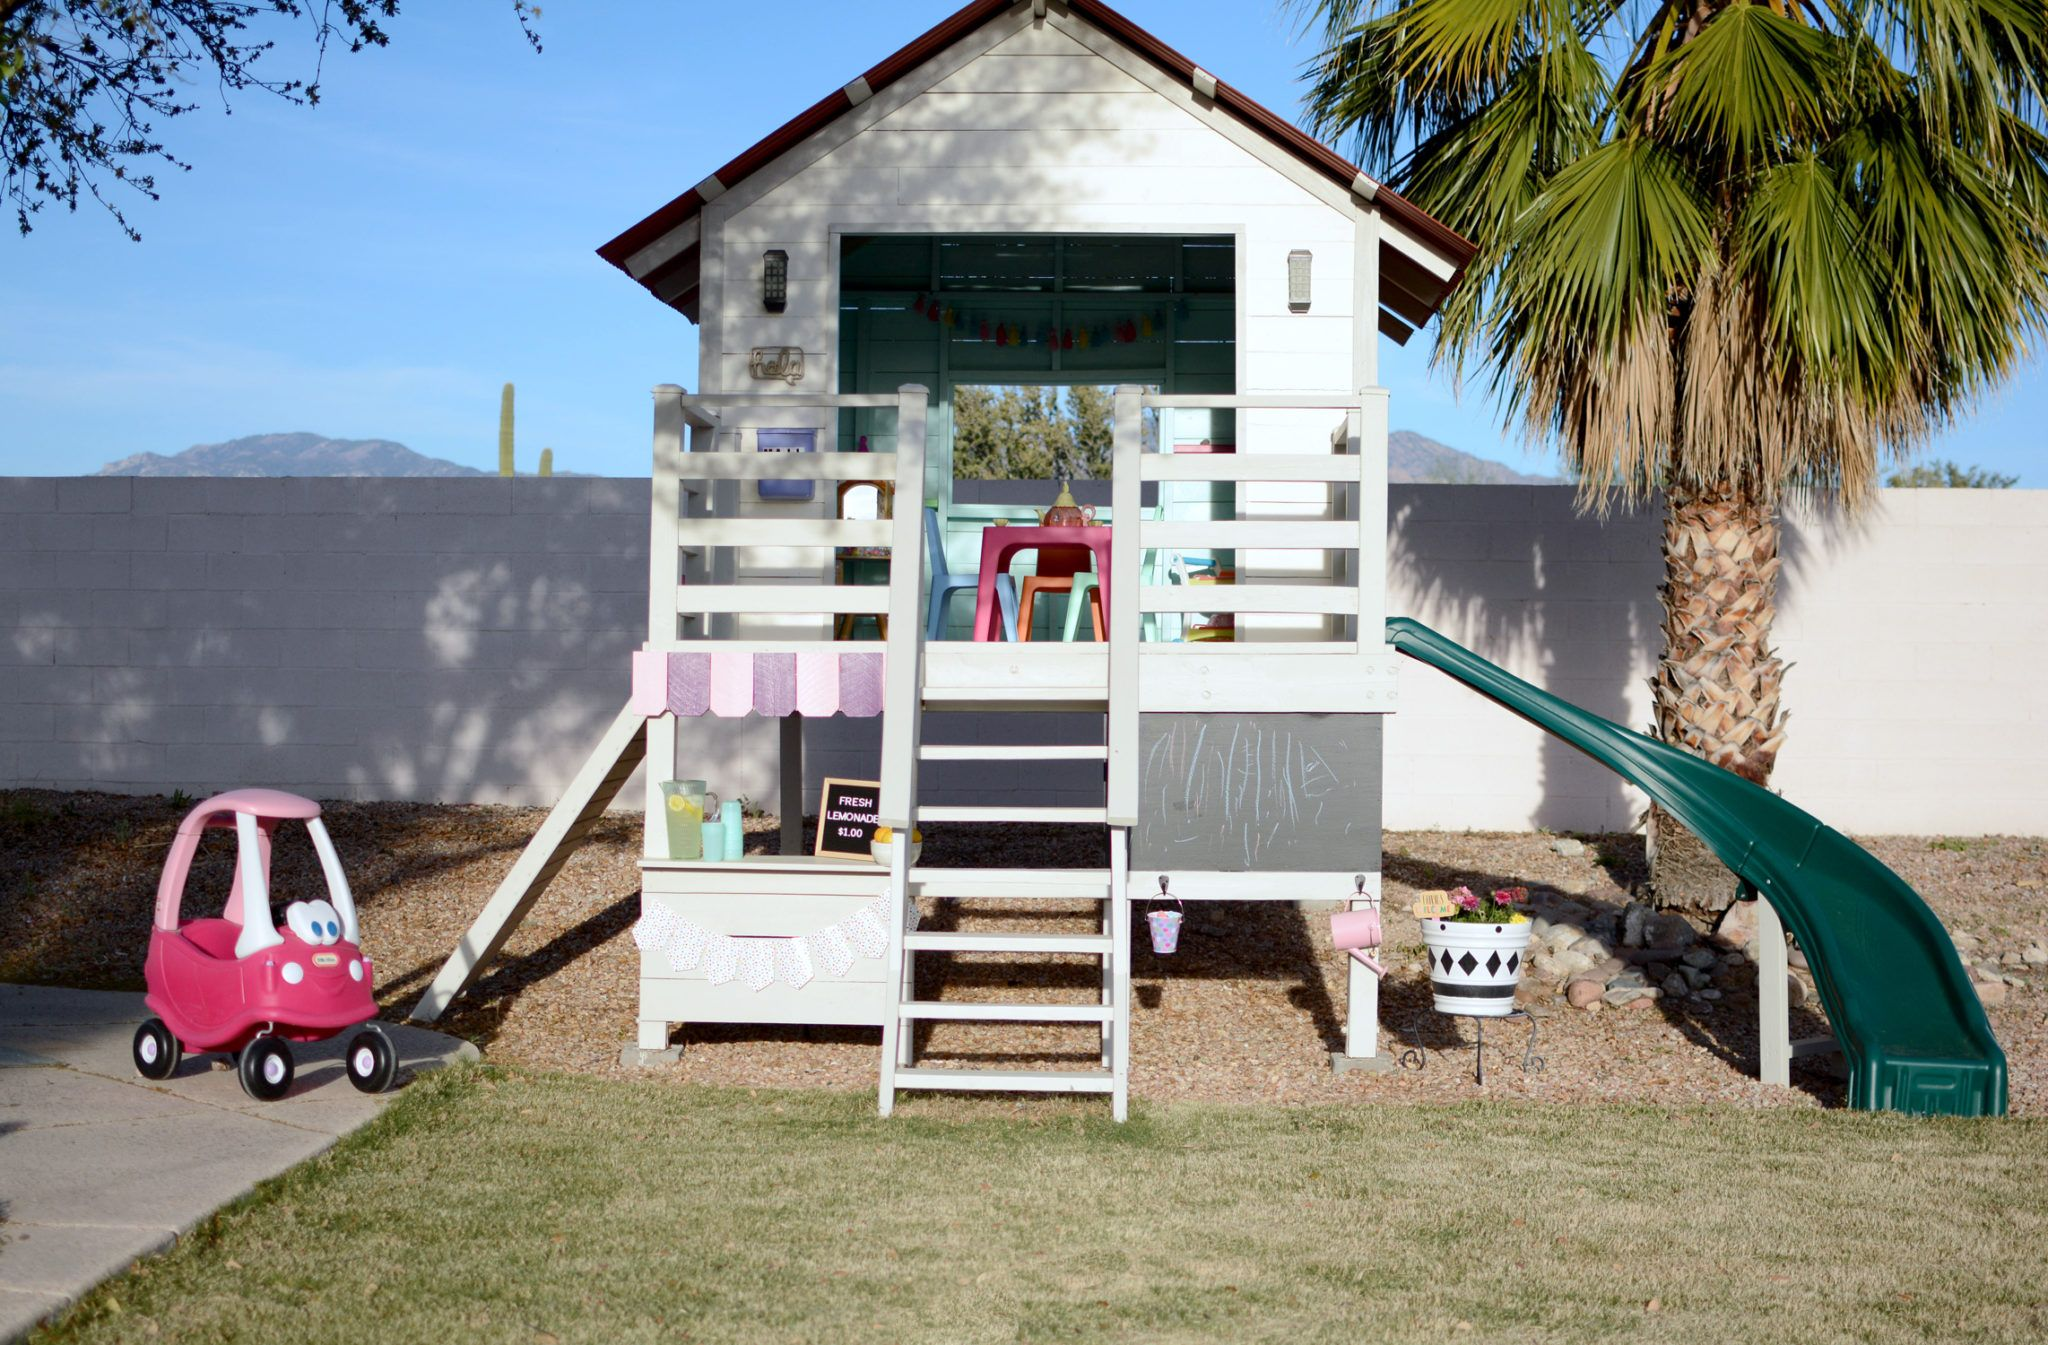 Operation Clubhouse Diy Playhouse With Slide In 2020 Playhouse With Slide Play Houses Diy Playhouse